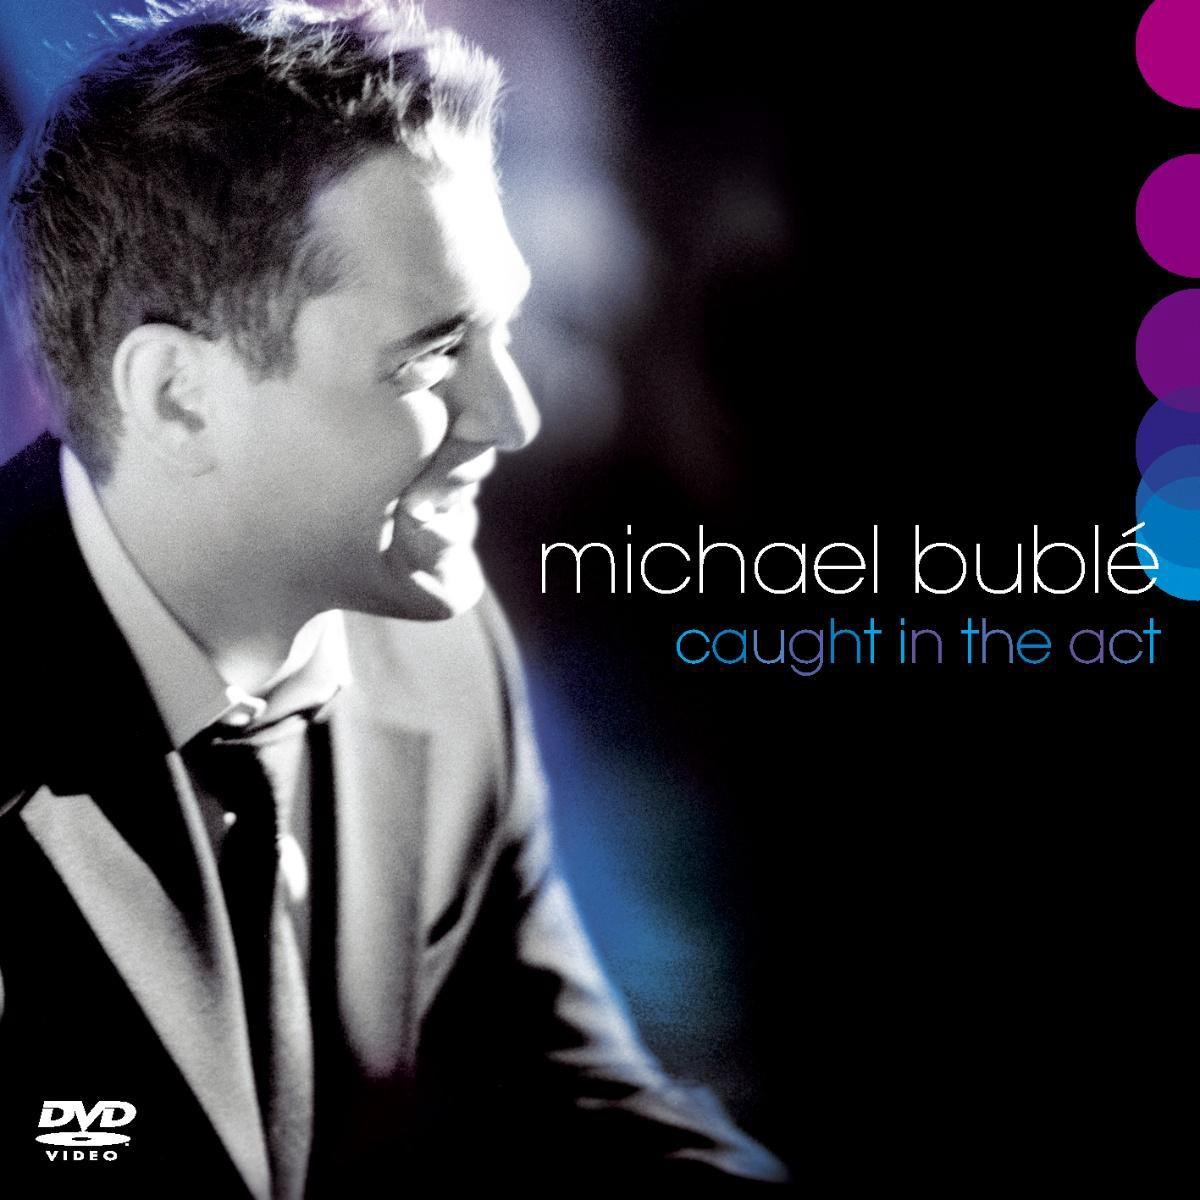 Caught In The Act (CD+DVD) - Michael Bublé